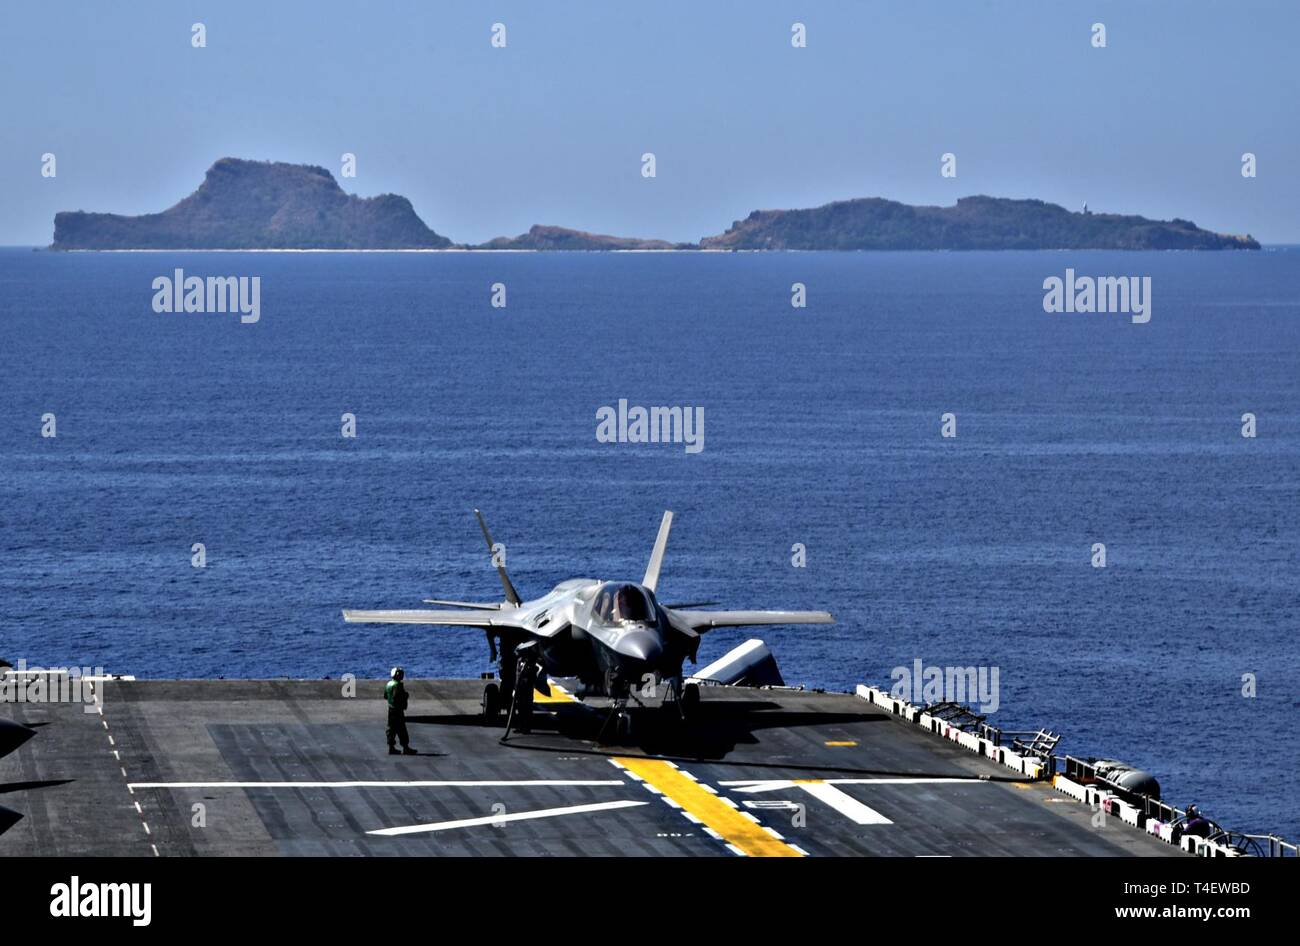 SOUTH CHINA SEA (April 3, 2019) An F-35B Lightning II aircraft, assigned to Marine Fighter Attack Squadron (VMFA) 121, is secured to the flight deck as the amphibious assault ship USS Wasp (LHD 1) operates off the coast of the Philippines in support of Exercise Balikatan 2019. Exercise Balikatan, in its 35th iteration, is an annual U.S., Philippine military training exercise focused on a variety of missions, including humanitarian assistance and disaster relief, counter-terrorism, and other combined military operations. - Stock Image